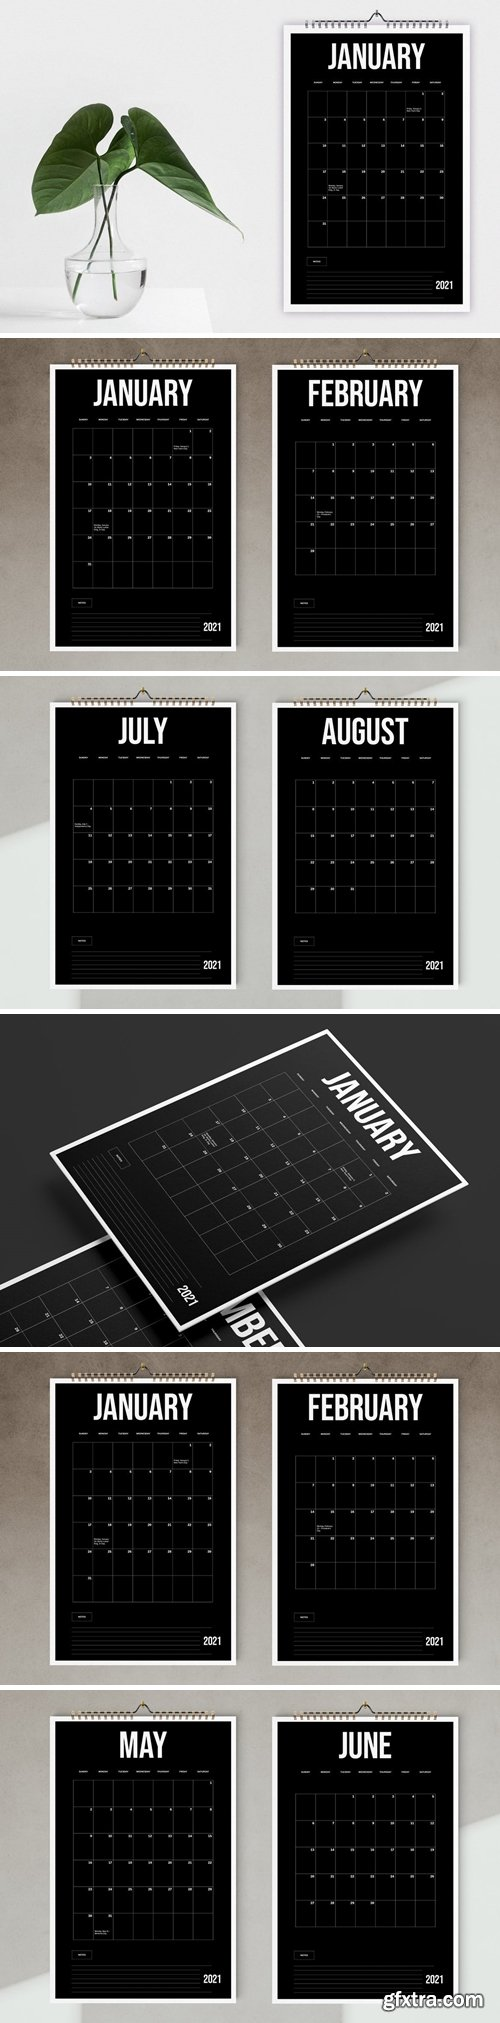 Black Wall Calendar 2021 Template